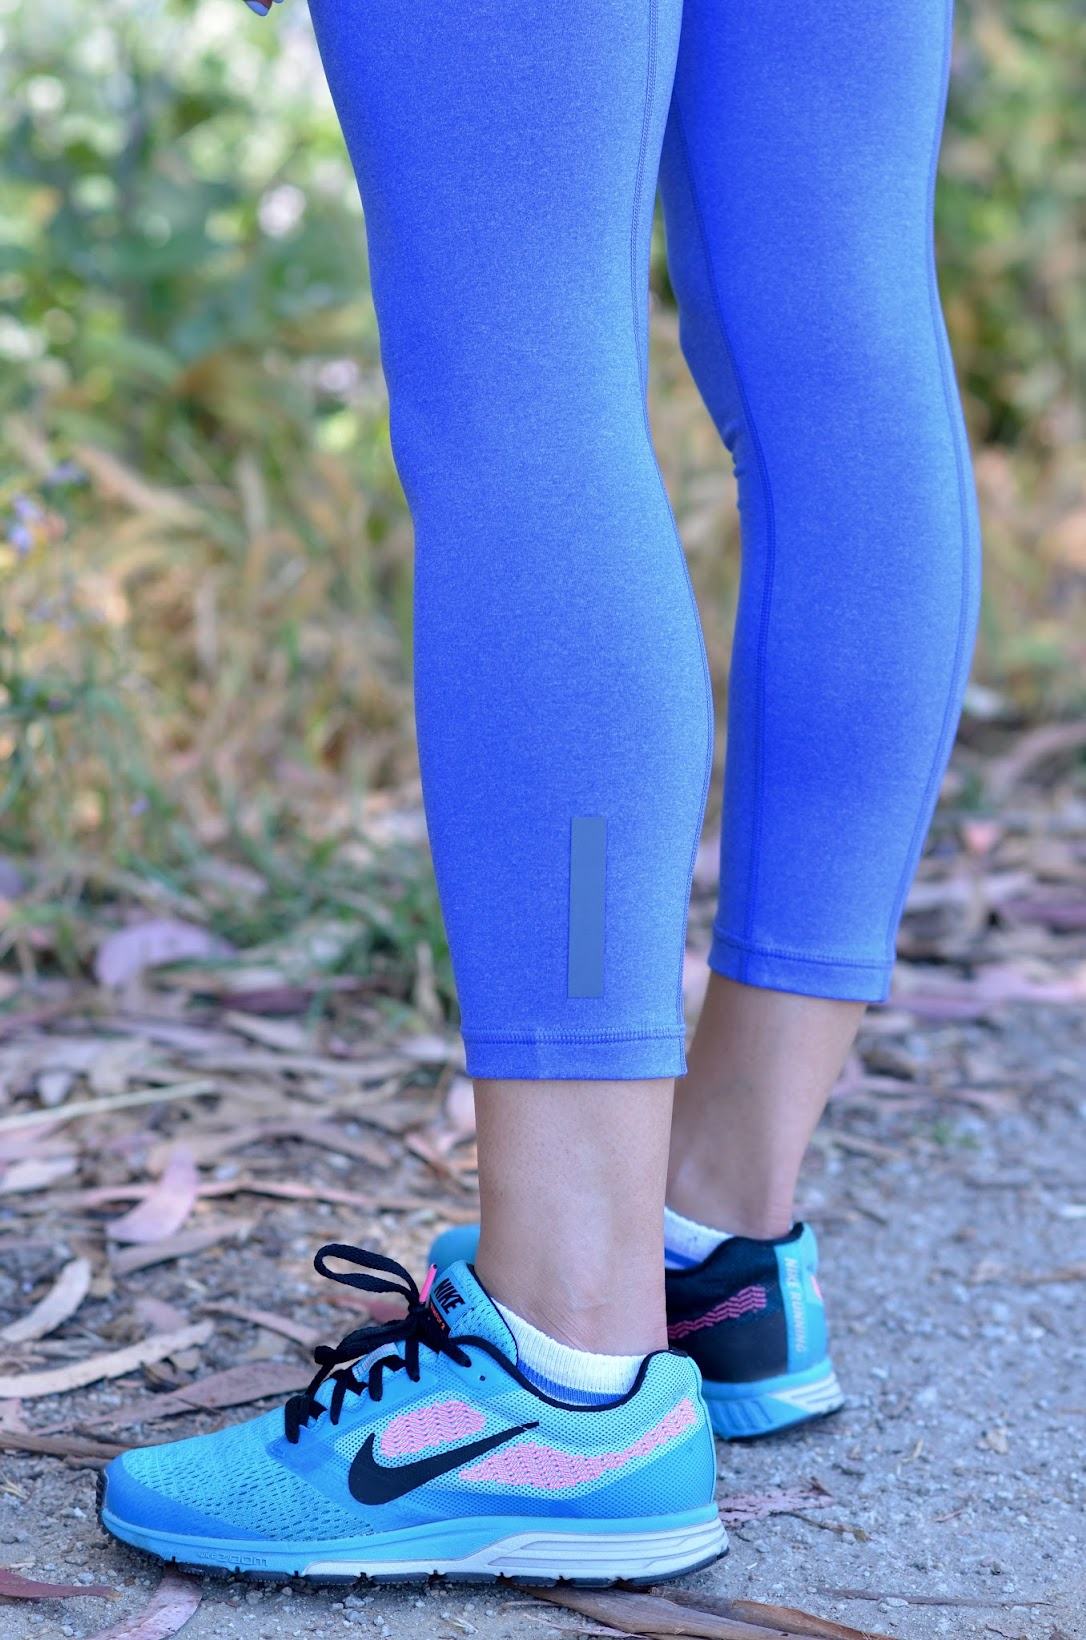 Lucy activewear, Lucy workout clothes, workout style, chic workout wear, cobalt workout leggings, Nike free